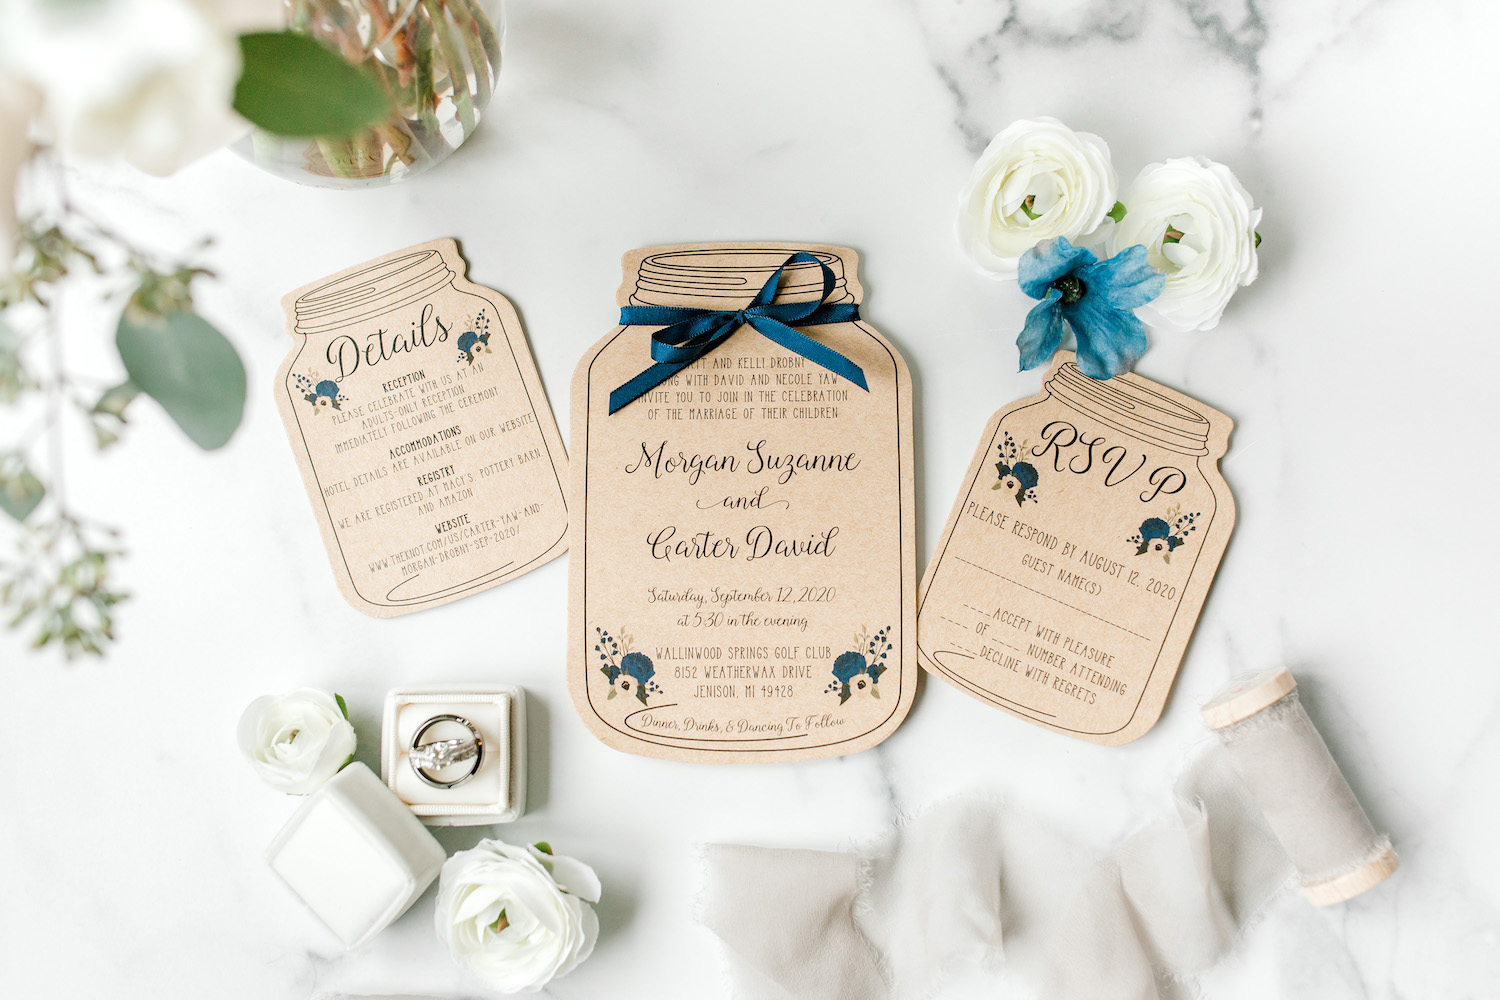 Wallinwood Springs Golf Course wedding stationaries with rings